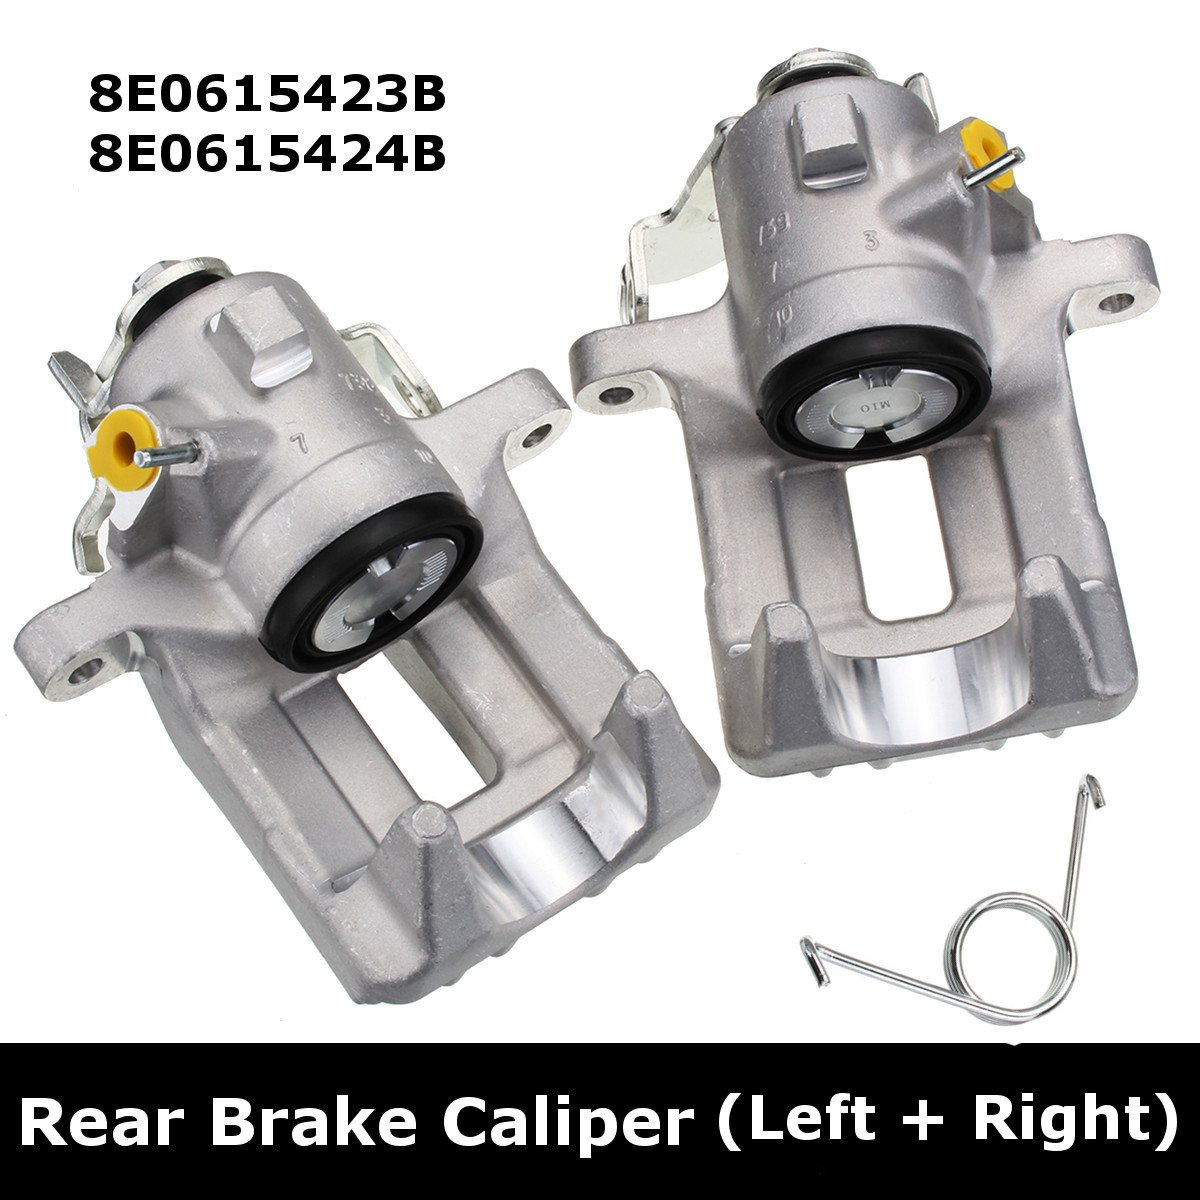 Rear Left+Right Brake Caliper 8E0615423B 8E0615424B For VW Passat 3B5 For Audi A4 A6 oil pump 058 115 105 c for audi a4 a6 vw passat